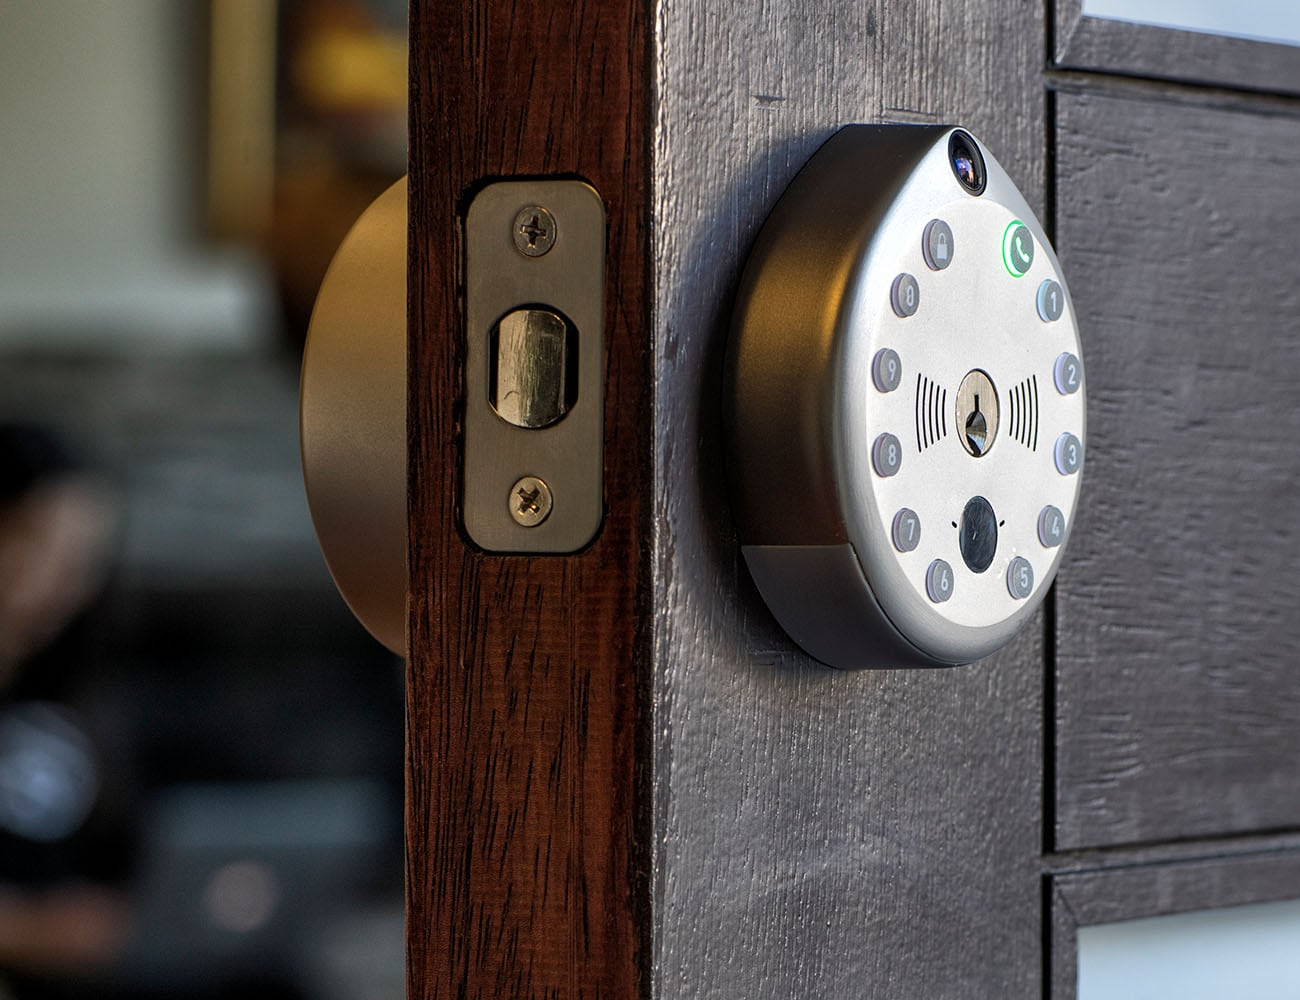 Gate Camera Smart Lock 187 Gadget Flow